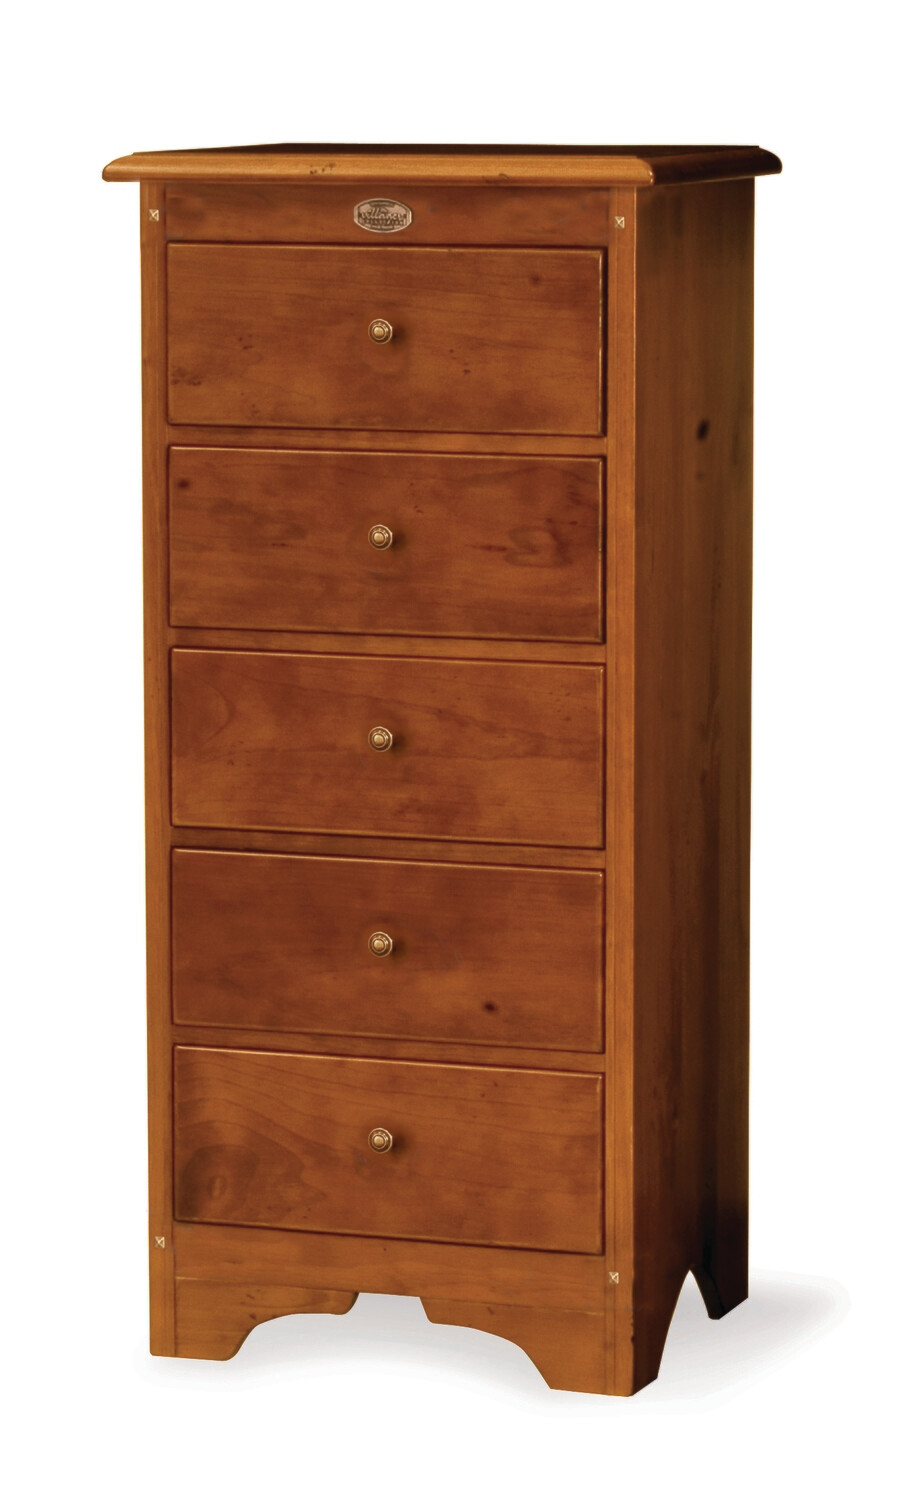 VILLAGER Tallboy 5 Drawer